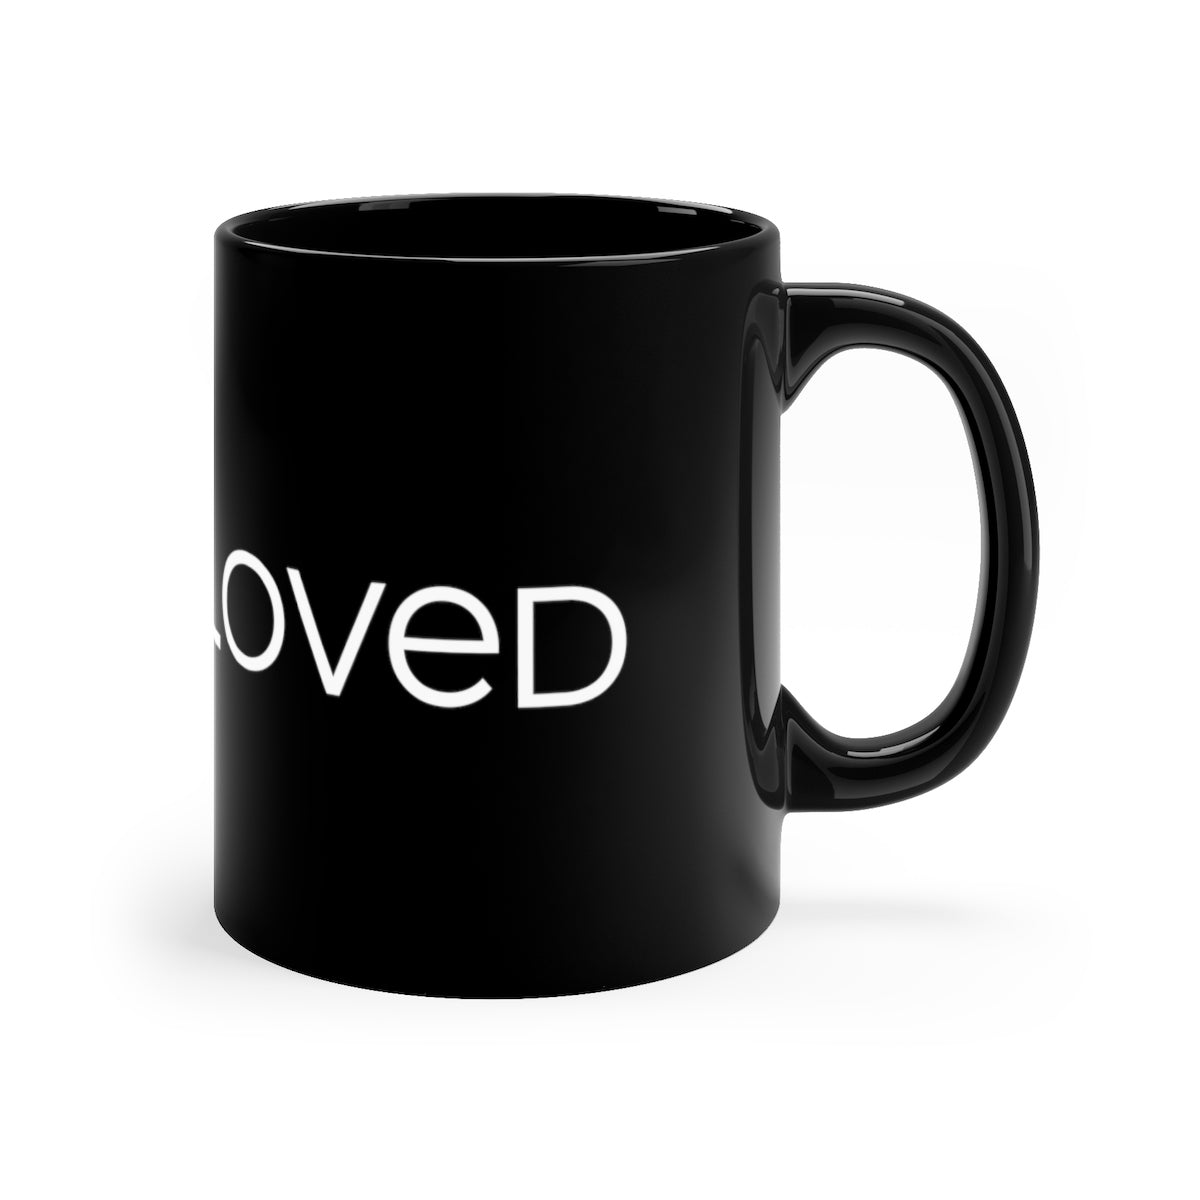 Livin Loved Black mug 11oz